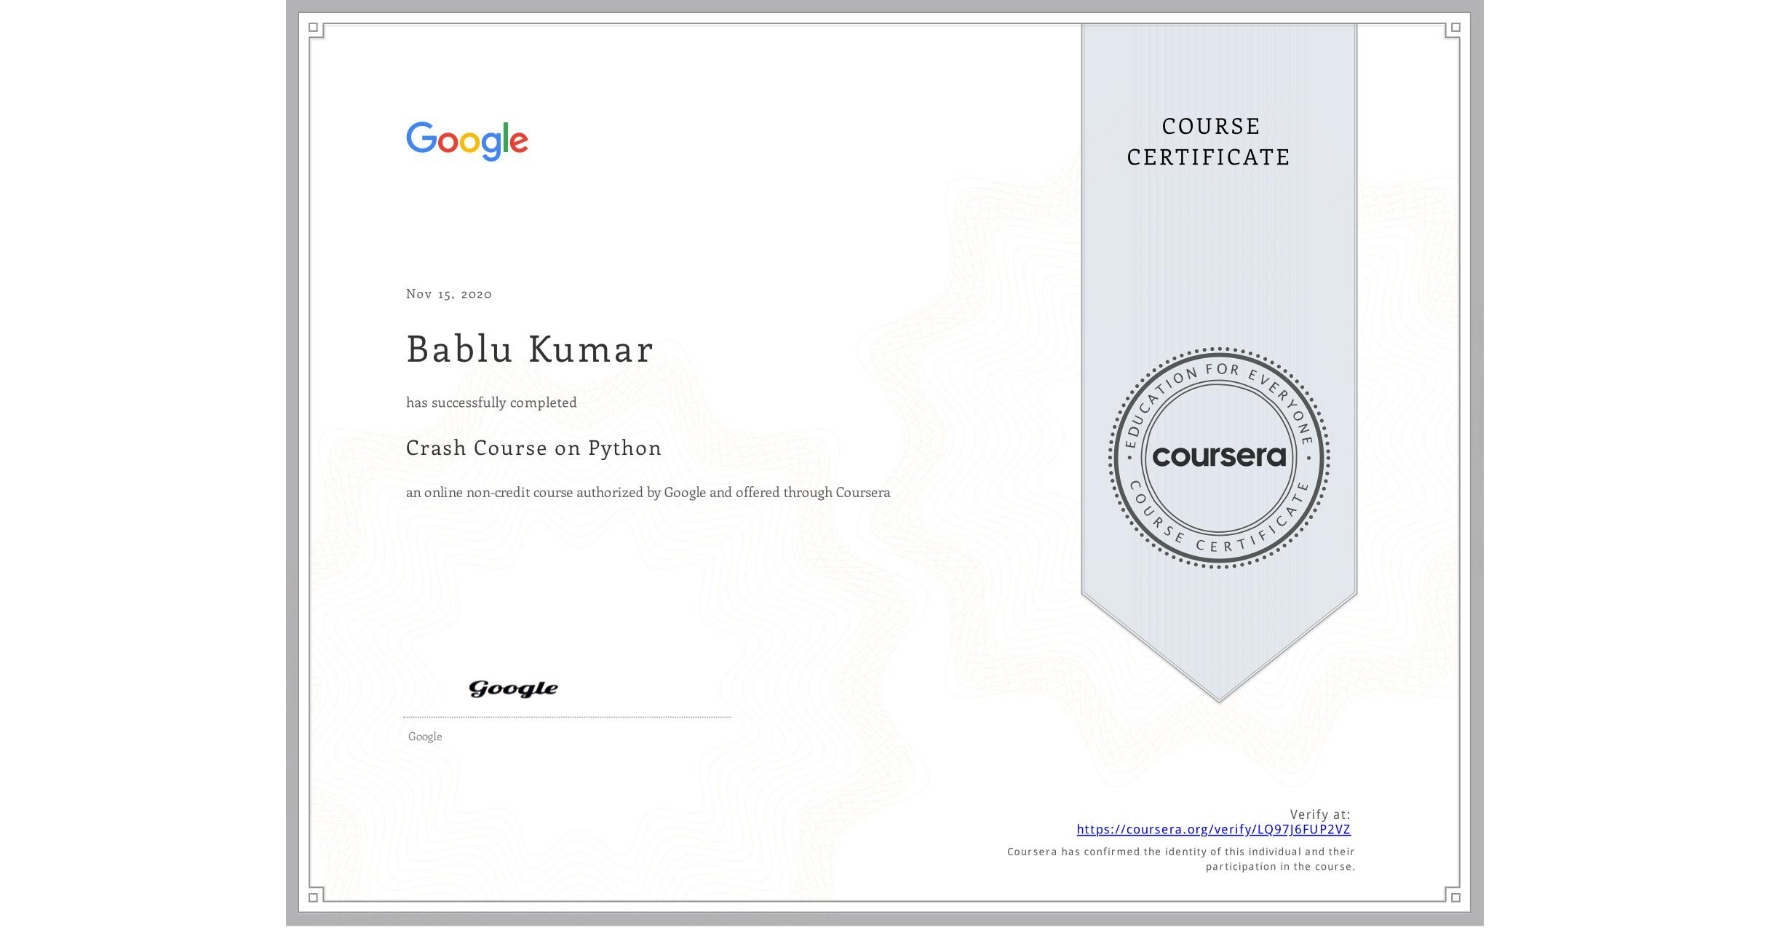 View certificate for Bablu Kumar, Crash Course on Python, an online non-credit course authorized by Google and offered through Coursera